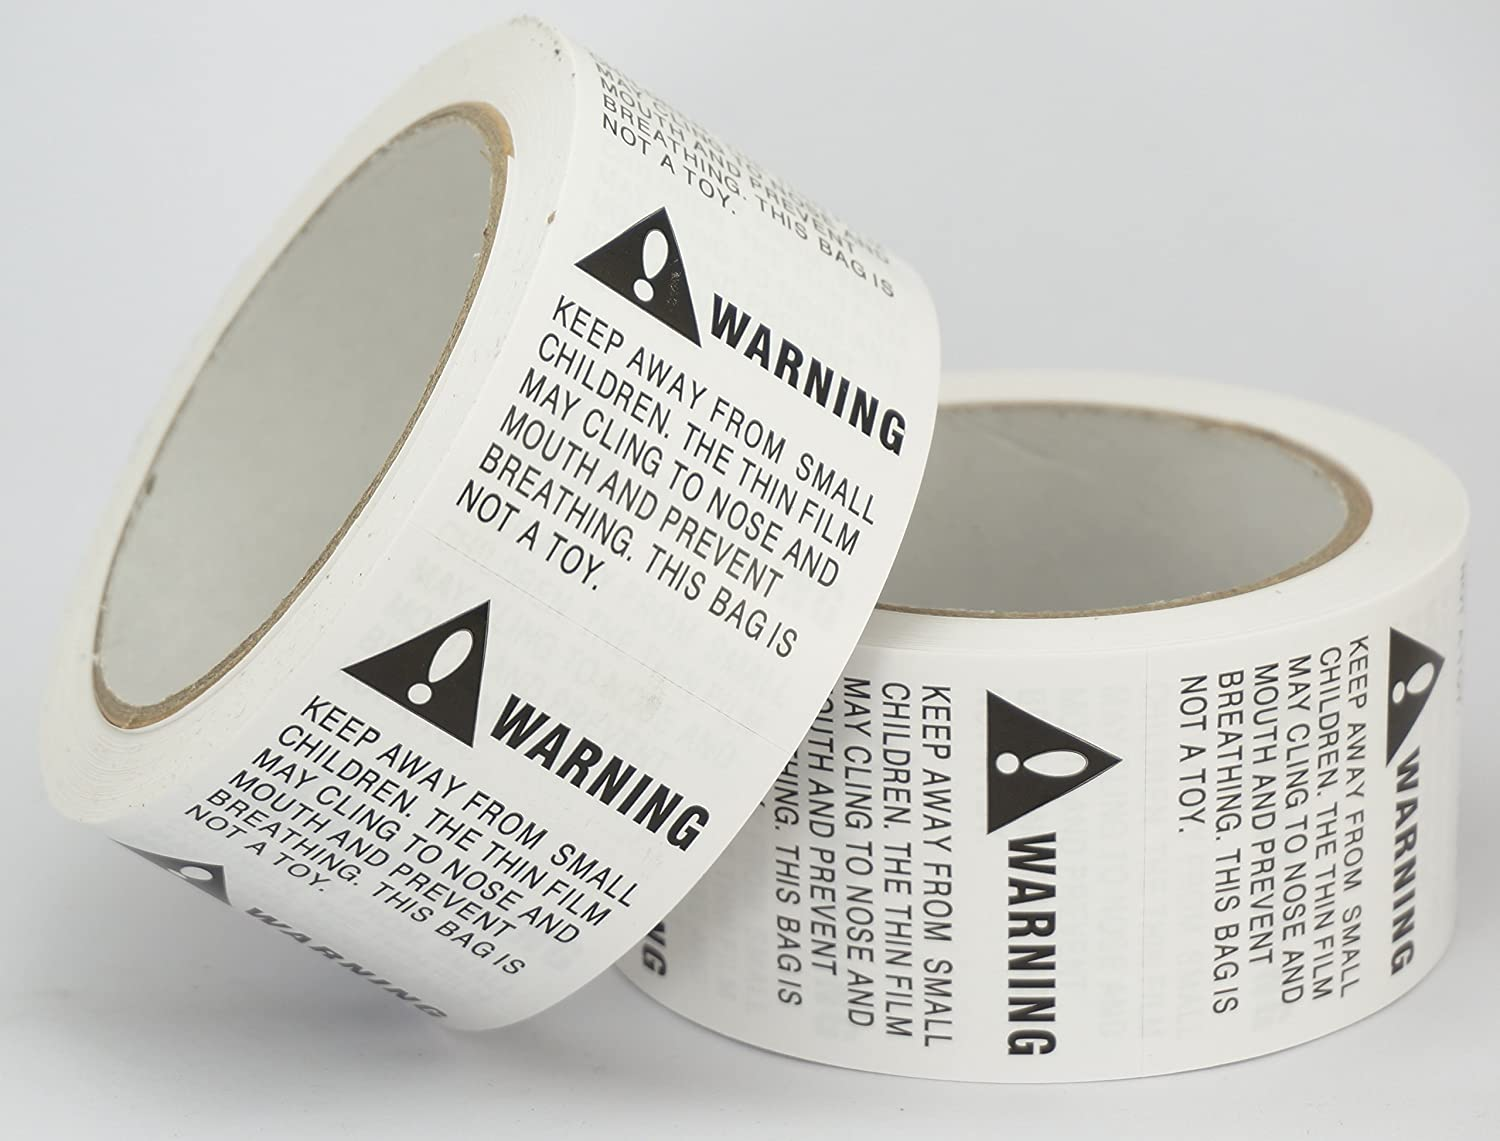 10 Rolls//5000 Labels,Suffocation Warning,Keep Away from Small Children,2 X 2 Removable Label Stickers